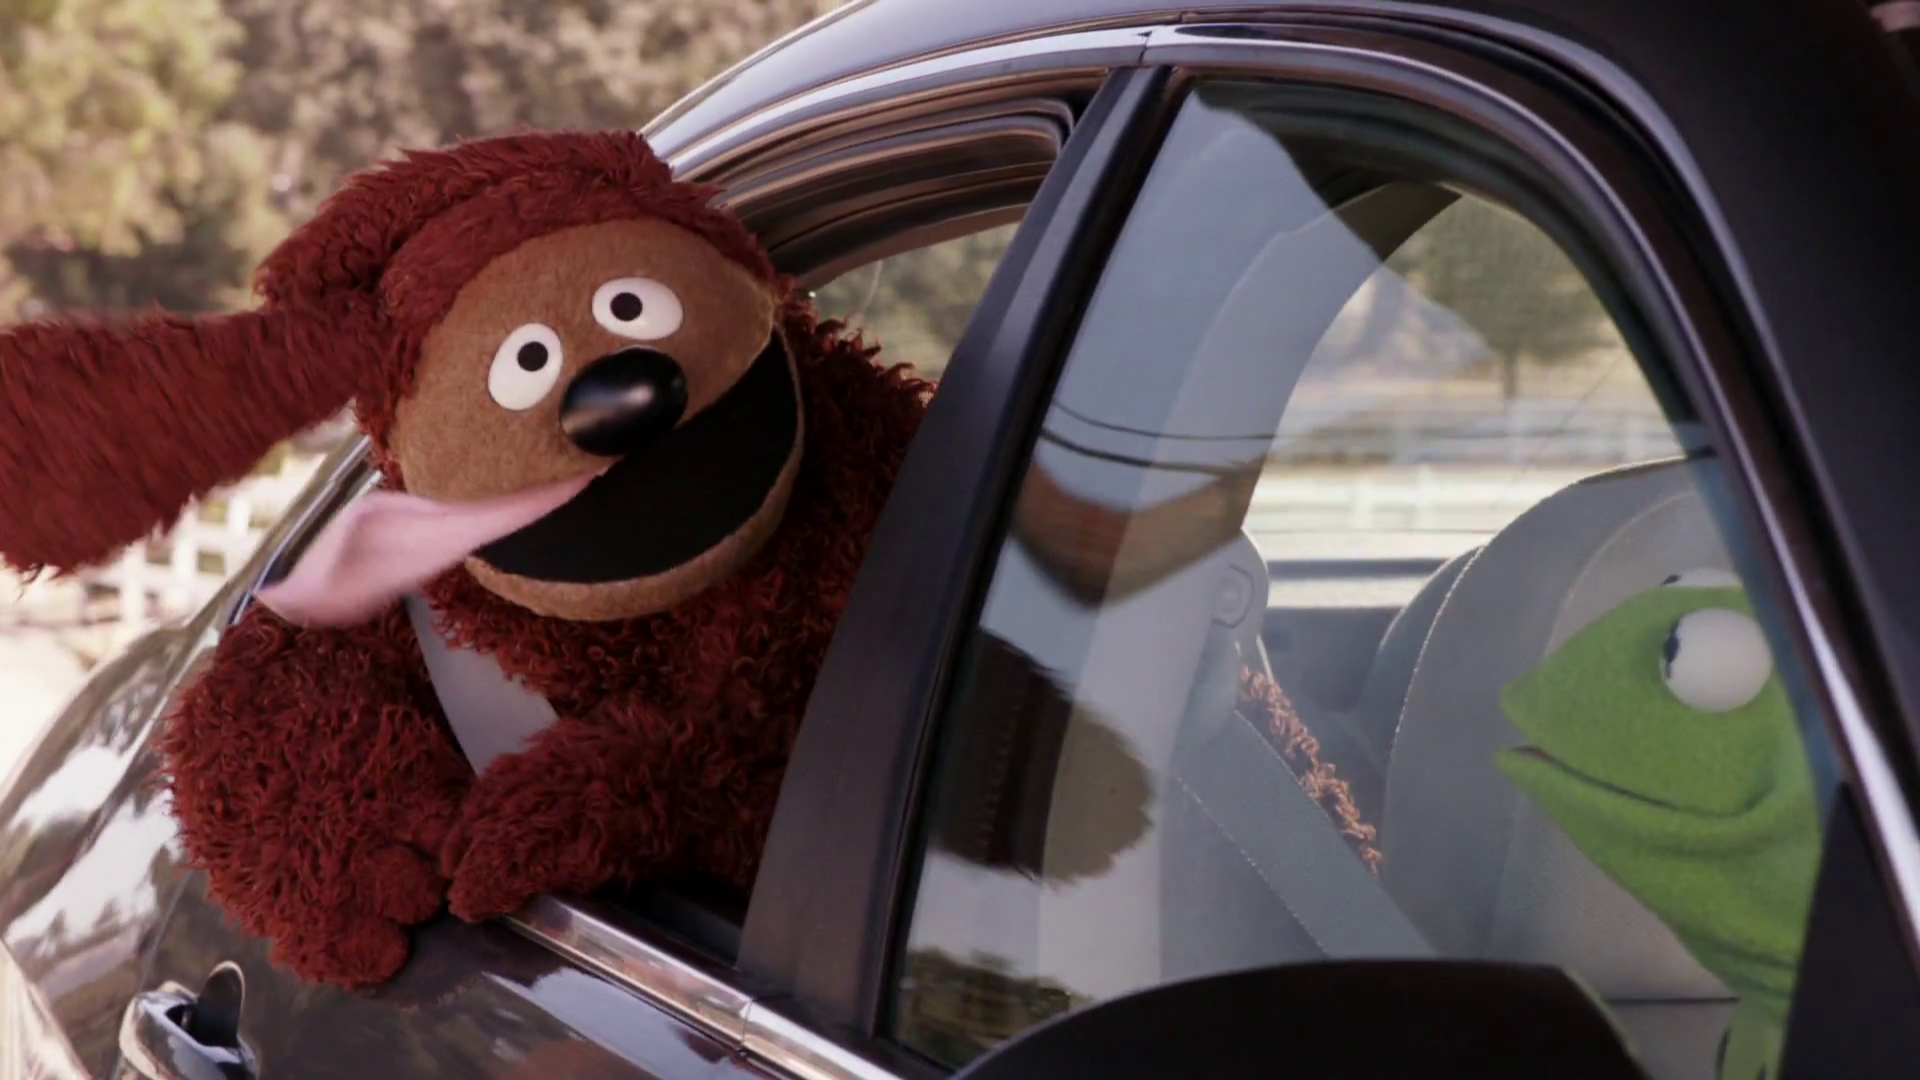 Car Games 2016 >> Rowlf the Dog Filmography | Muppet Wiki | Fandom powered ...